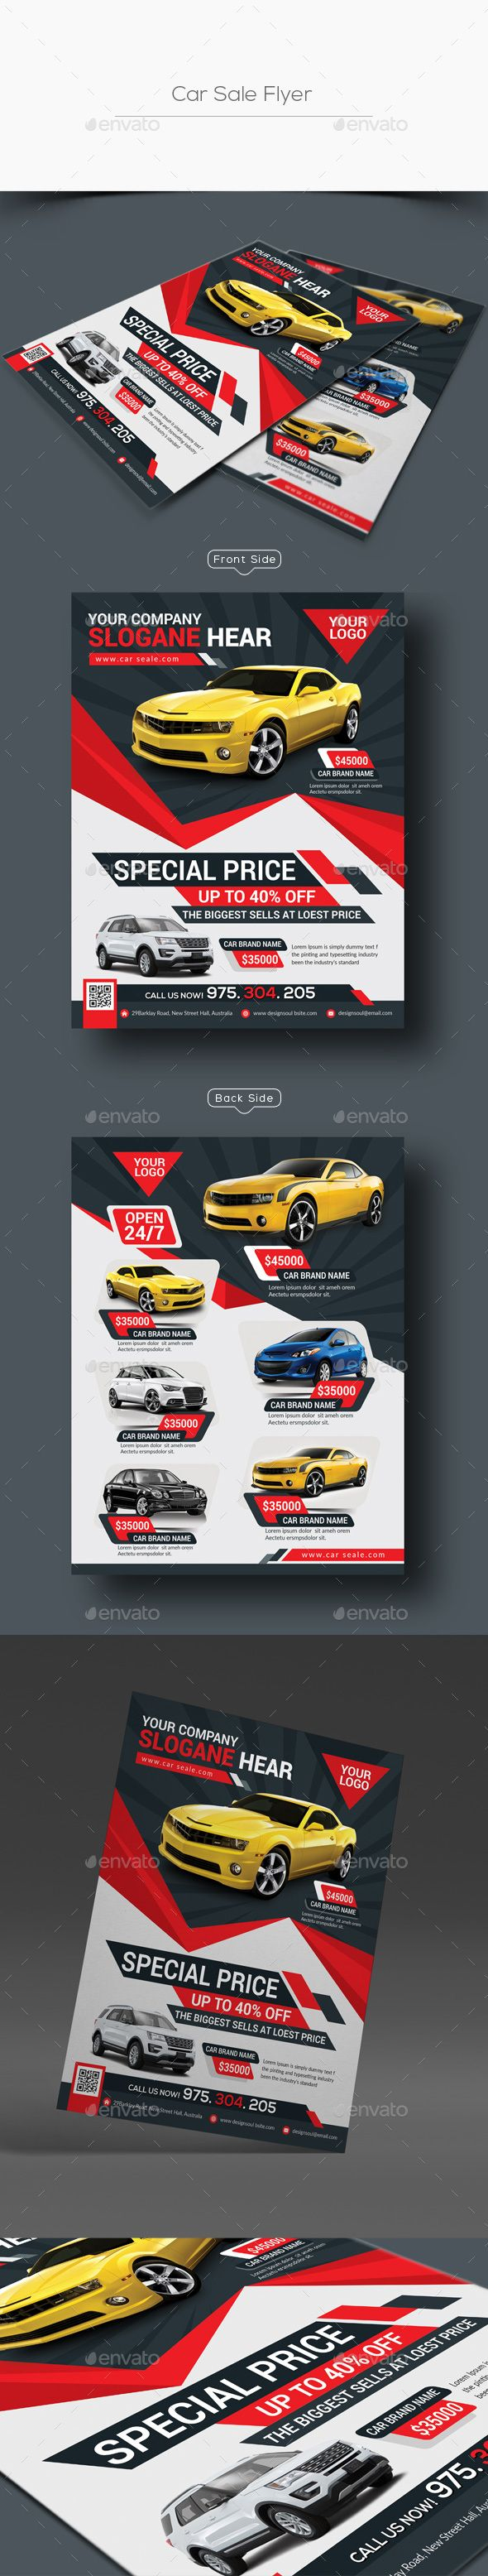 Car For Sale Flyer Car Sale Flyers  Pinterest  Sale Flyer Flyer Template And Template